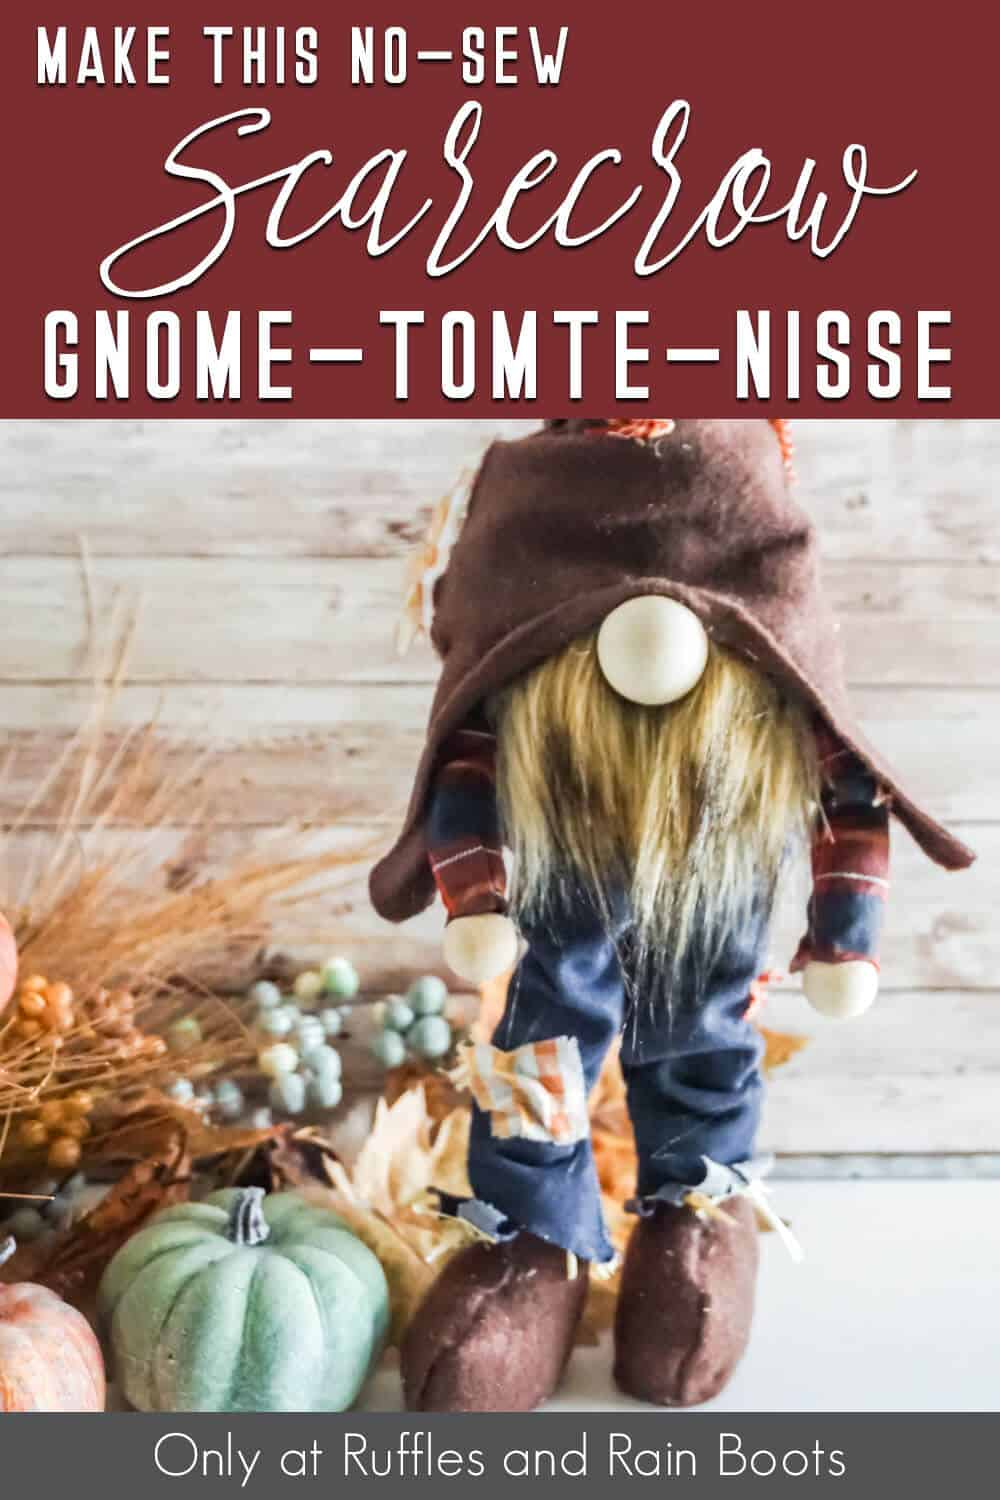 no-sew scarecrow gnome pattern that stands with text which reads make this no-sew scarecrow gnome tomte nisse